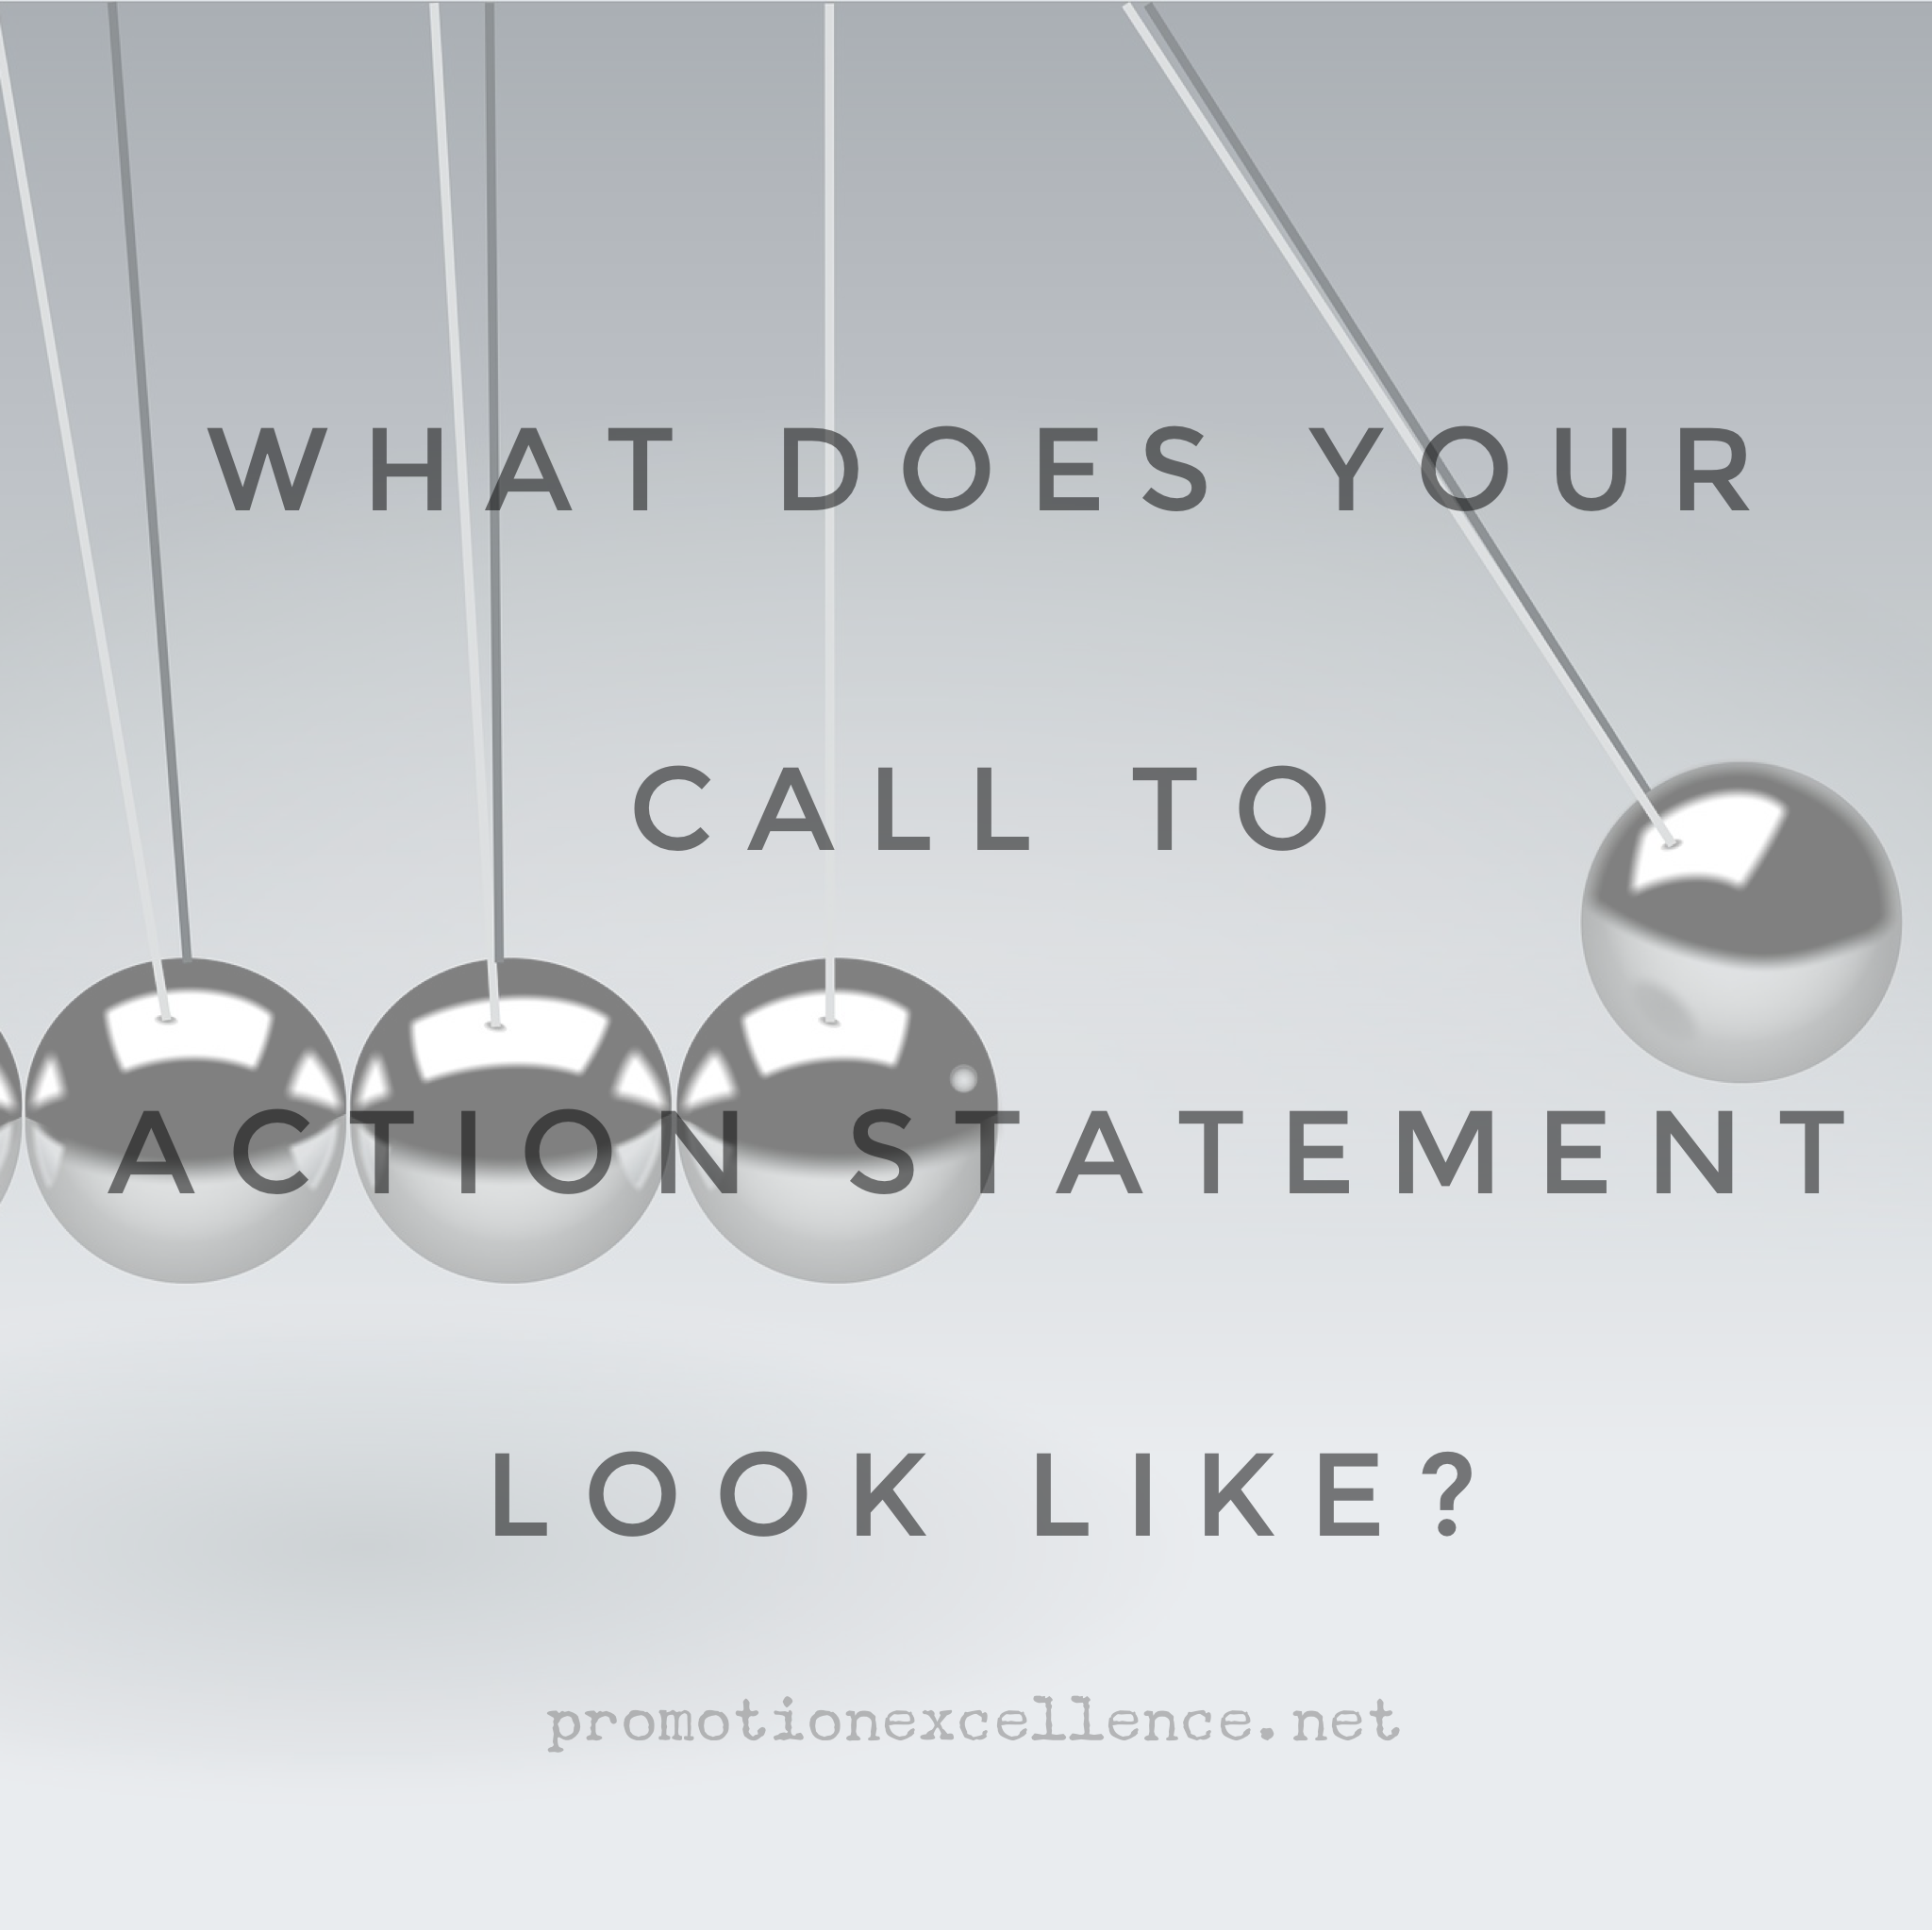 """The call-to-action statement is really a reflection of exactly what you do. If someone were to look at your statement, they would say, """"Got it.""""  It may be a reflection of your passion or your expertise. Either way the term ACTION means you are doing something to make a difference.  Actually writing out your CTA makes it a reality. Right on!"""